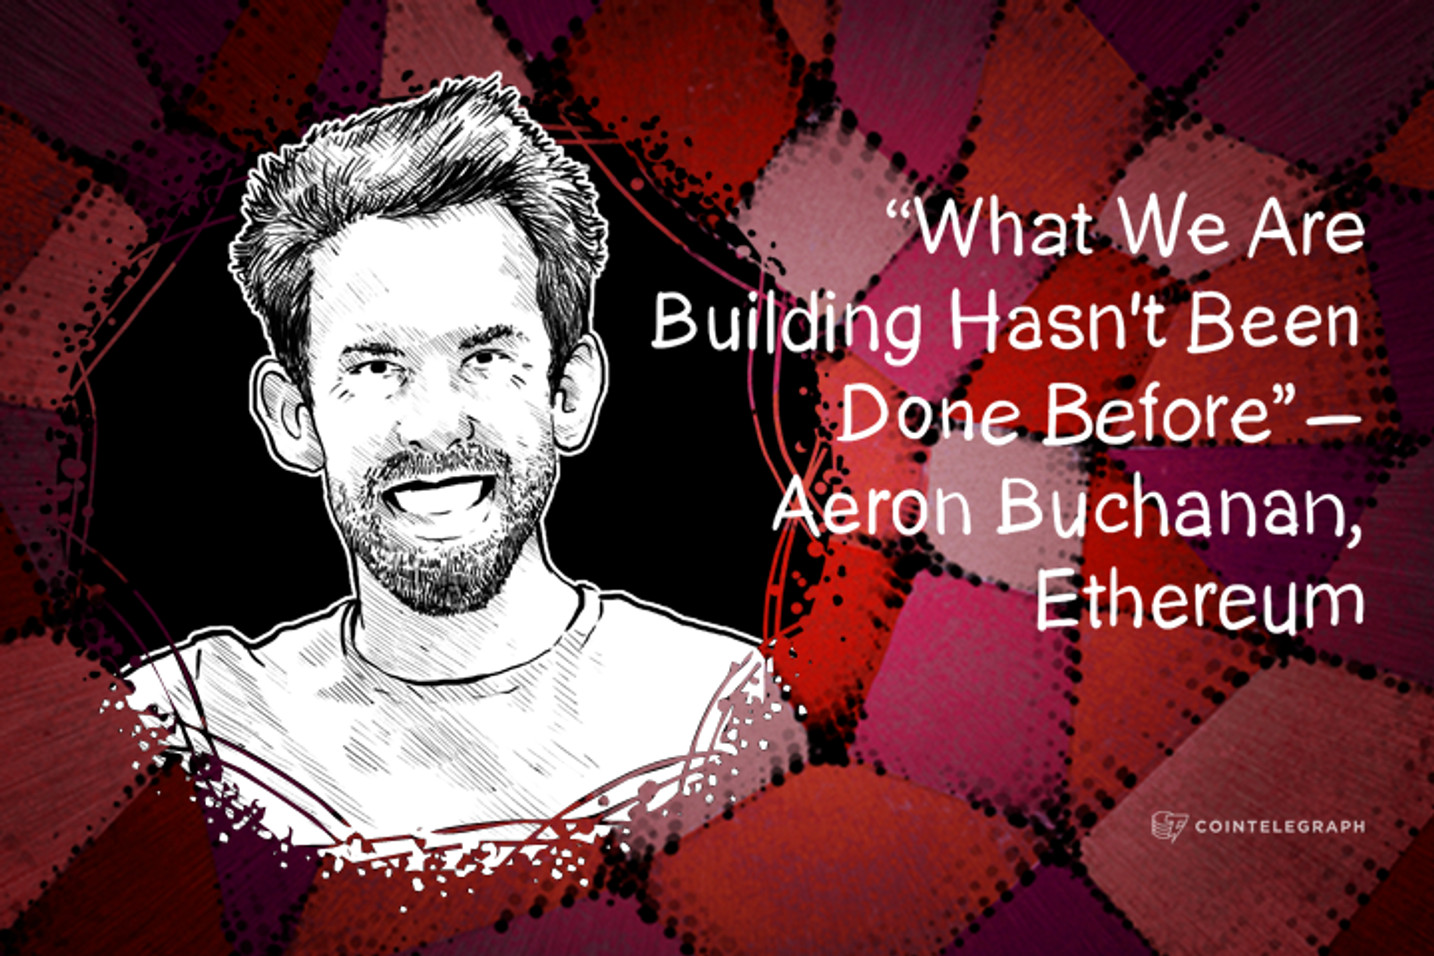 """What We Are Building Hasn't Been Done Before"" - Aeron Buchanan, Ethereum"